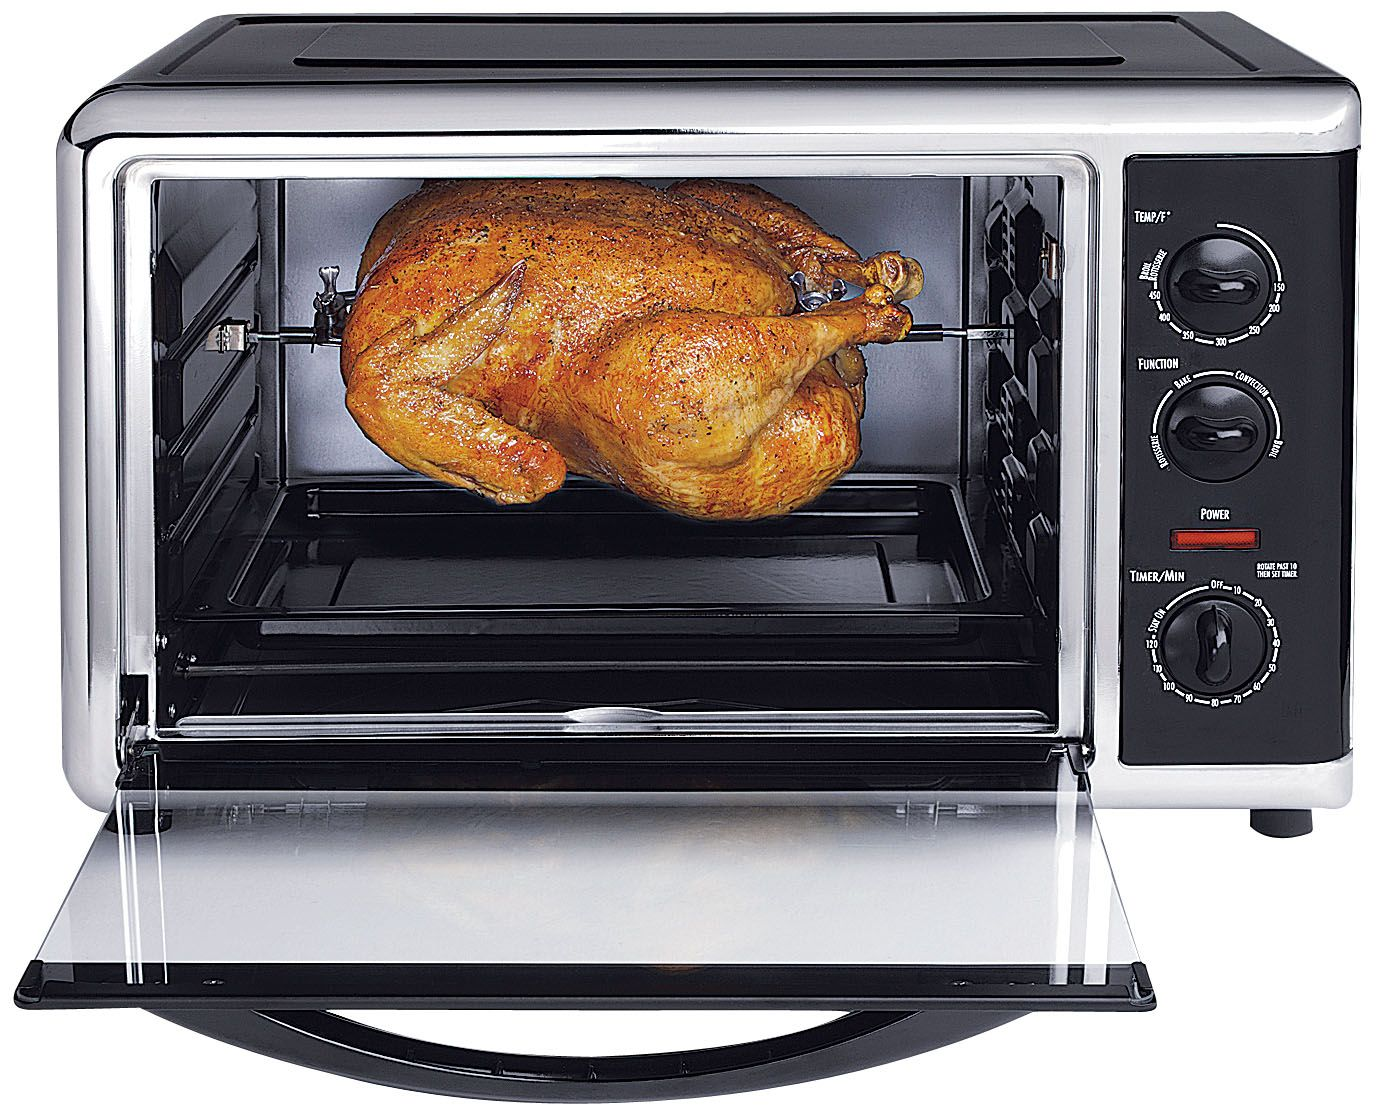 Convection ovens are generally more efficient than their conventional counterpart Source: Fingerhut